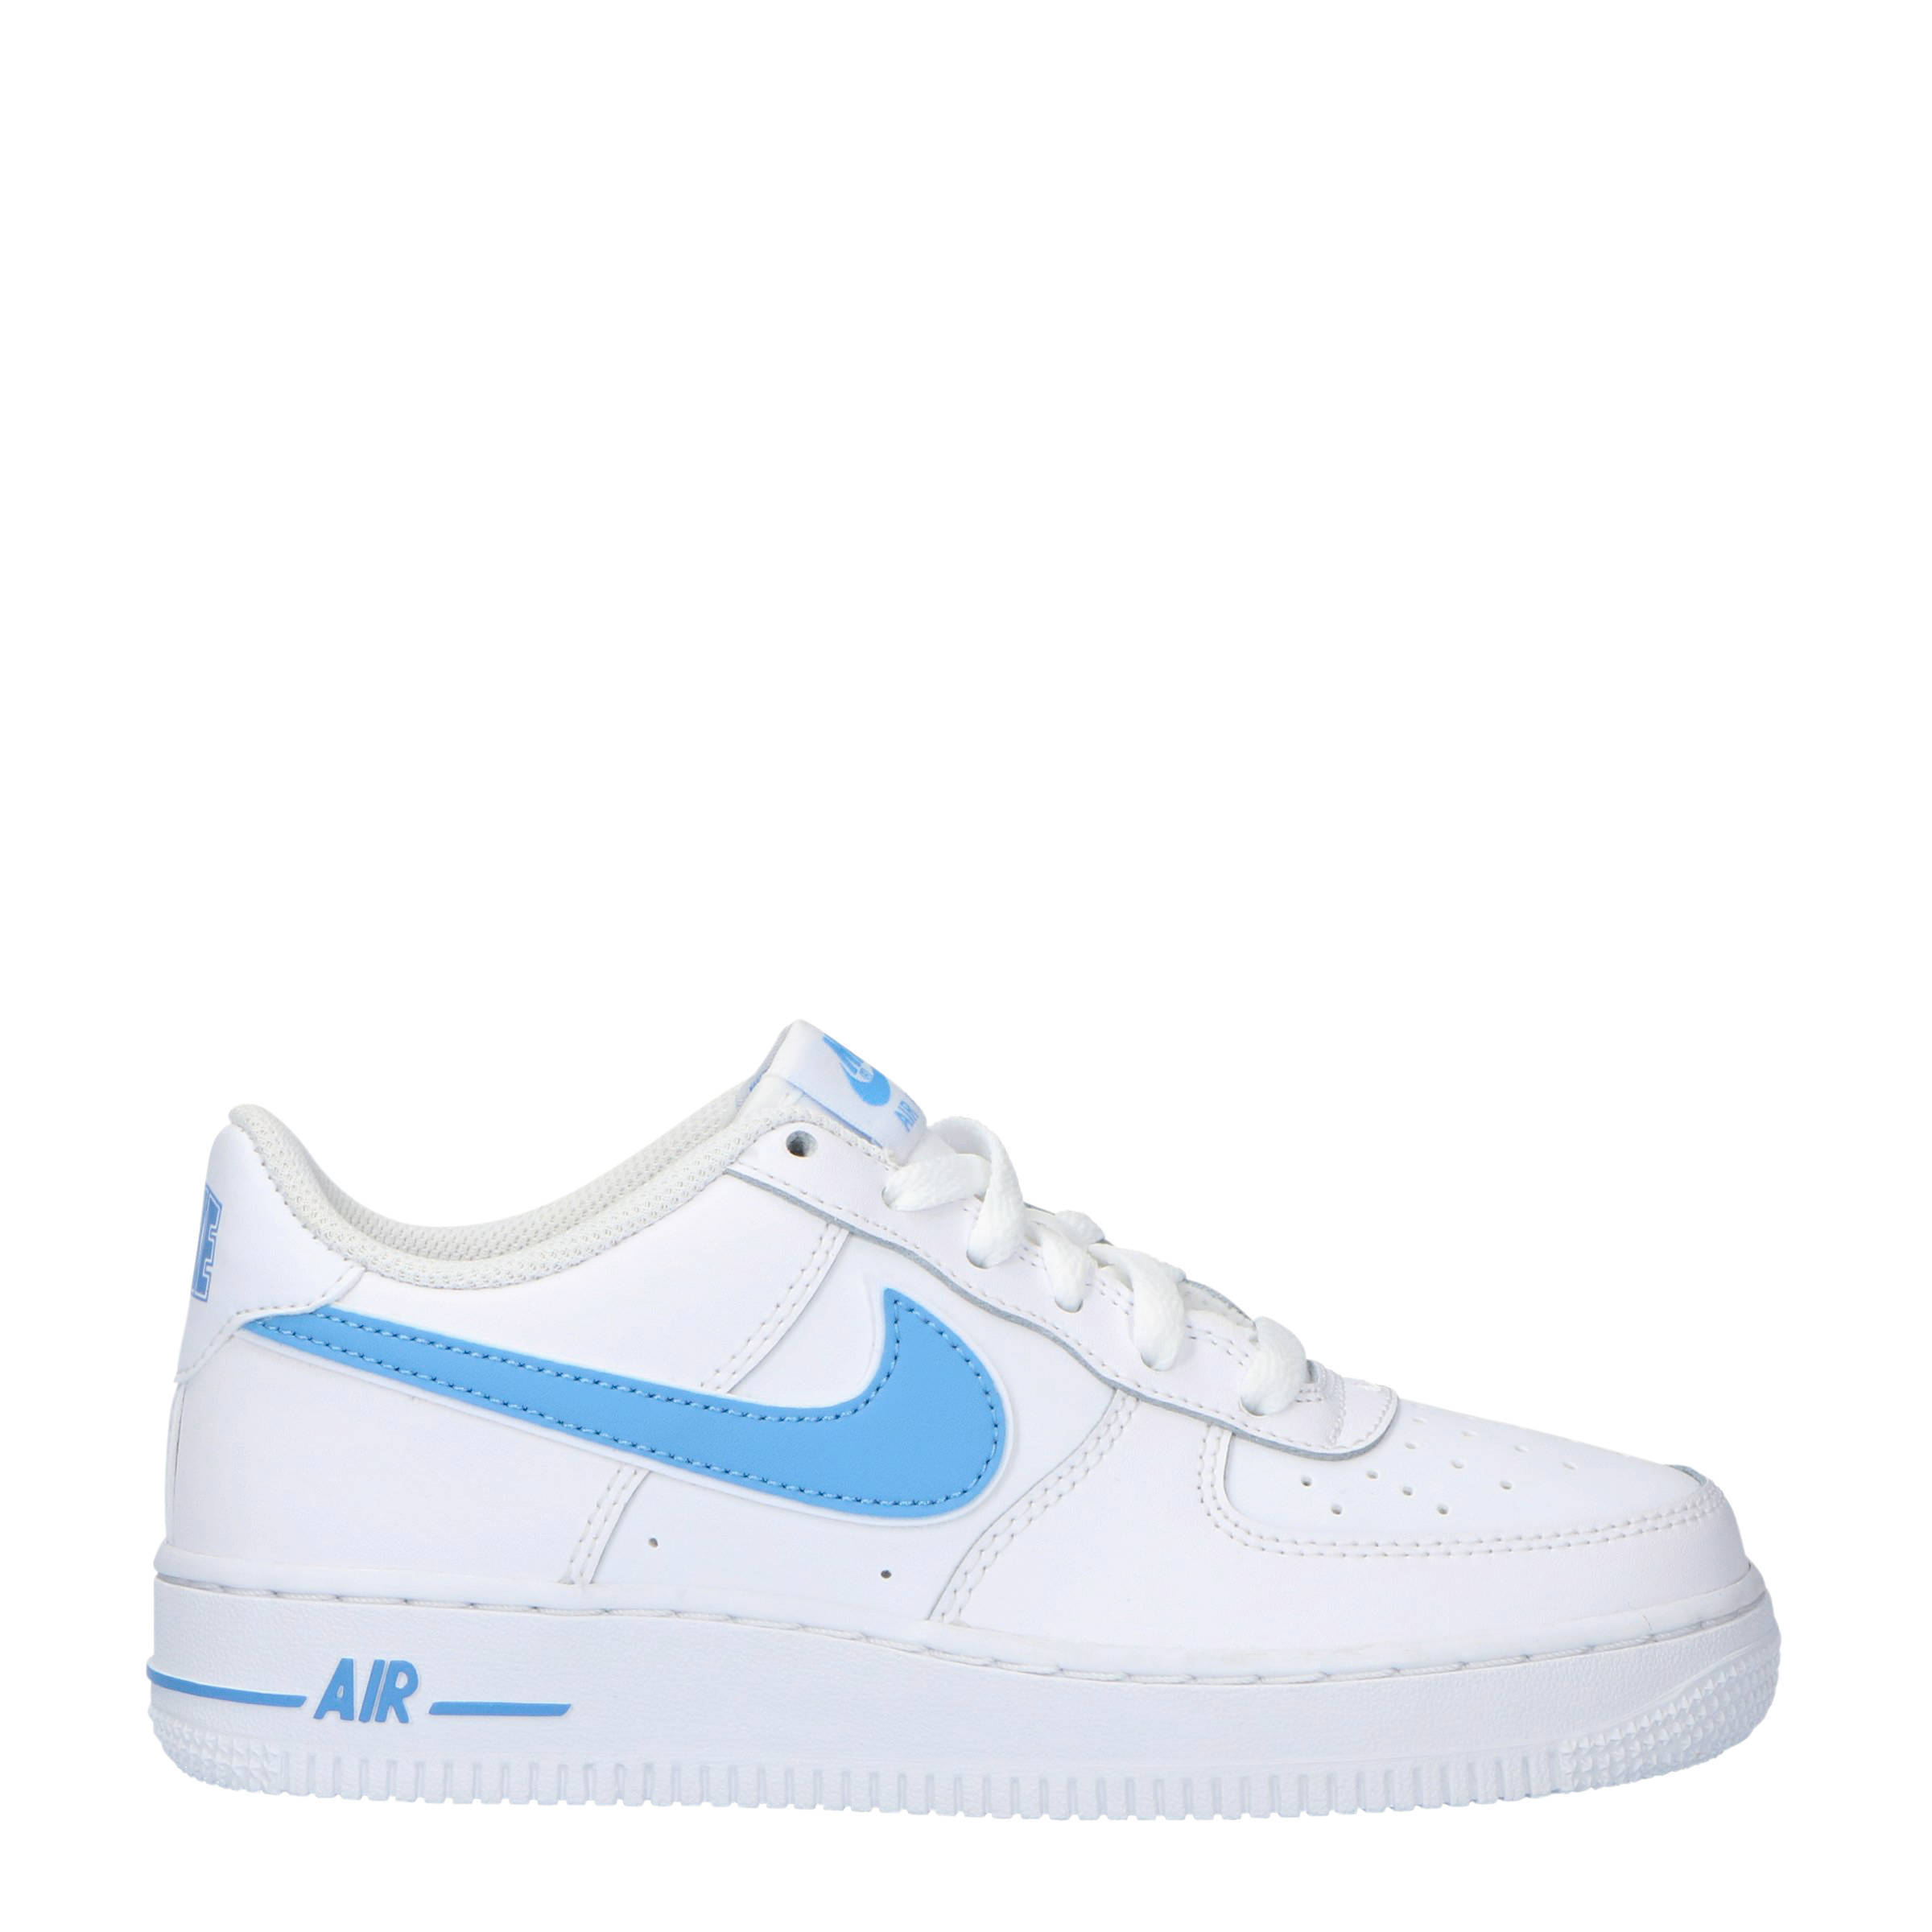 Air Force 1 3 (GS) sneakers leer witlichtblauw